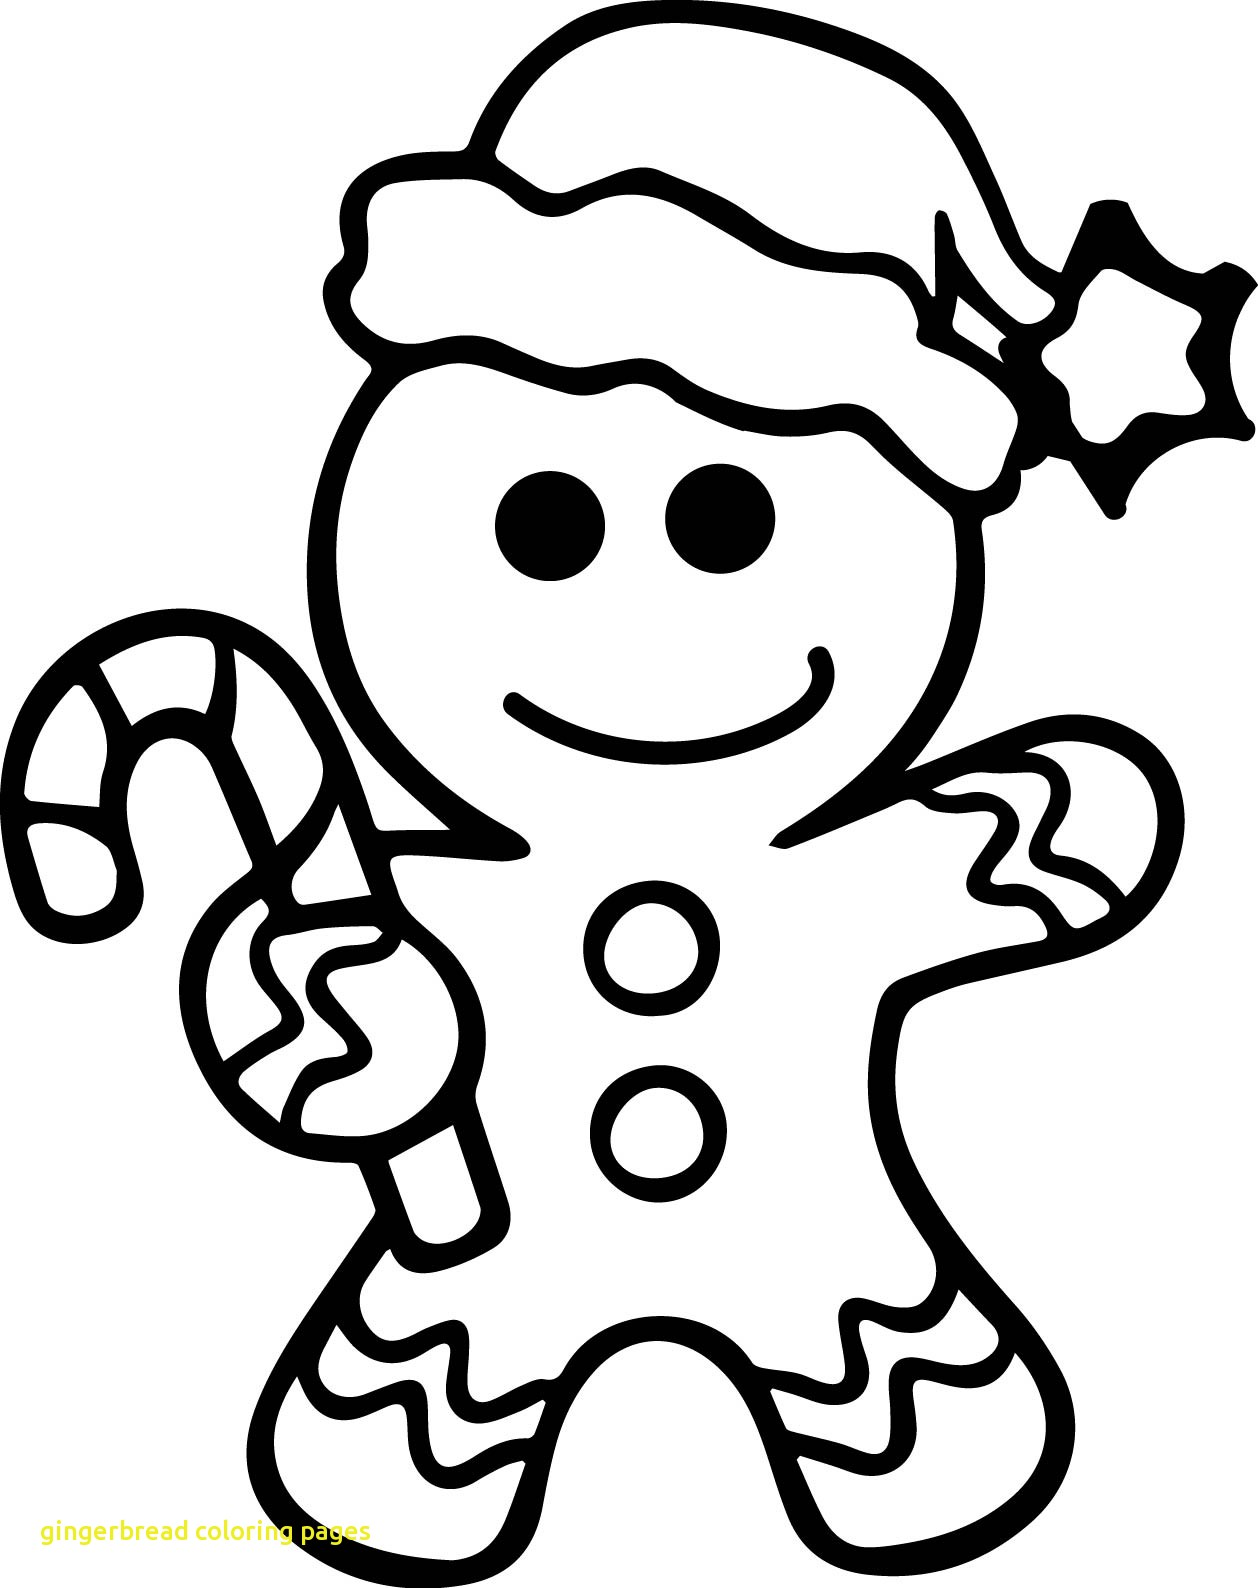 1258x1588 Gingerbread Girl Coloring Page Pages